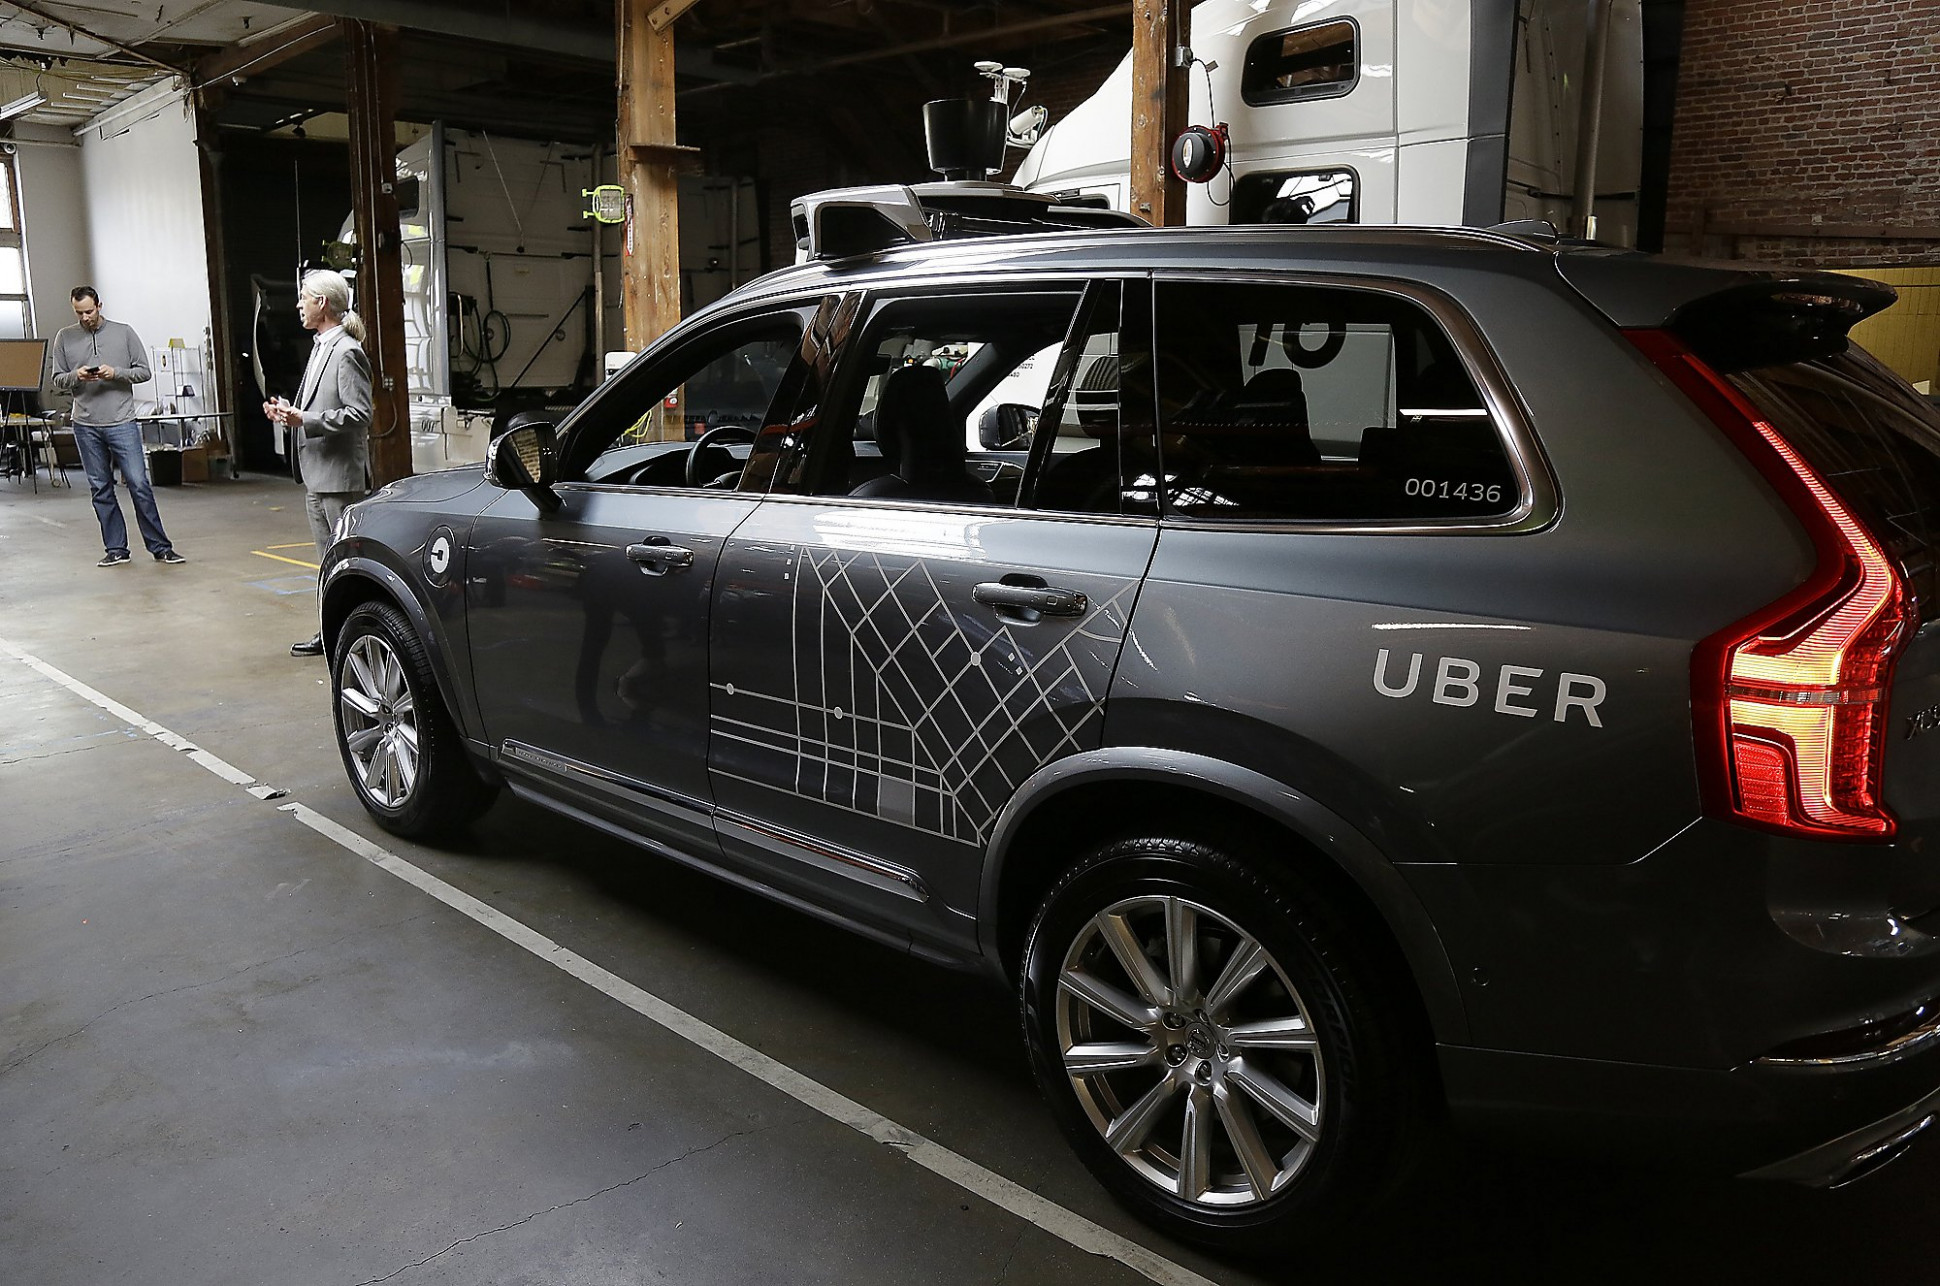 Bill would slap steep fines on self-driving cars without permits ..